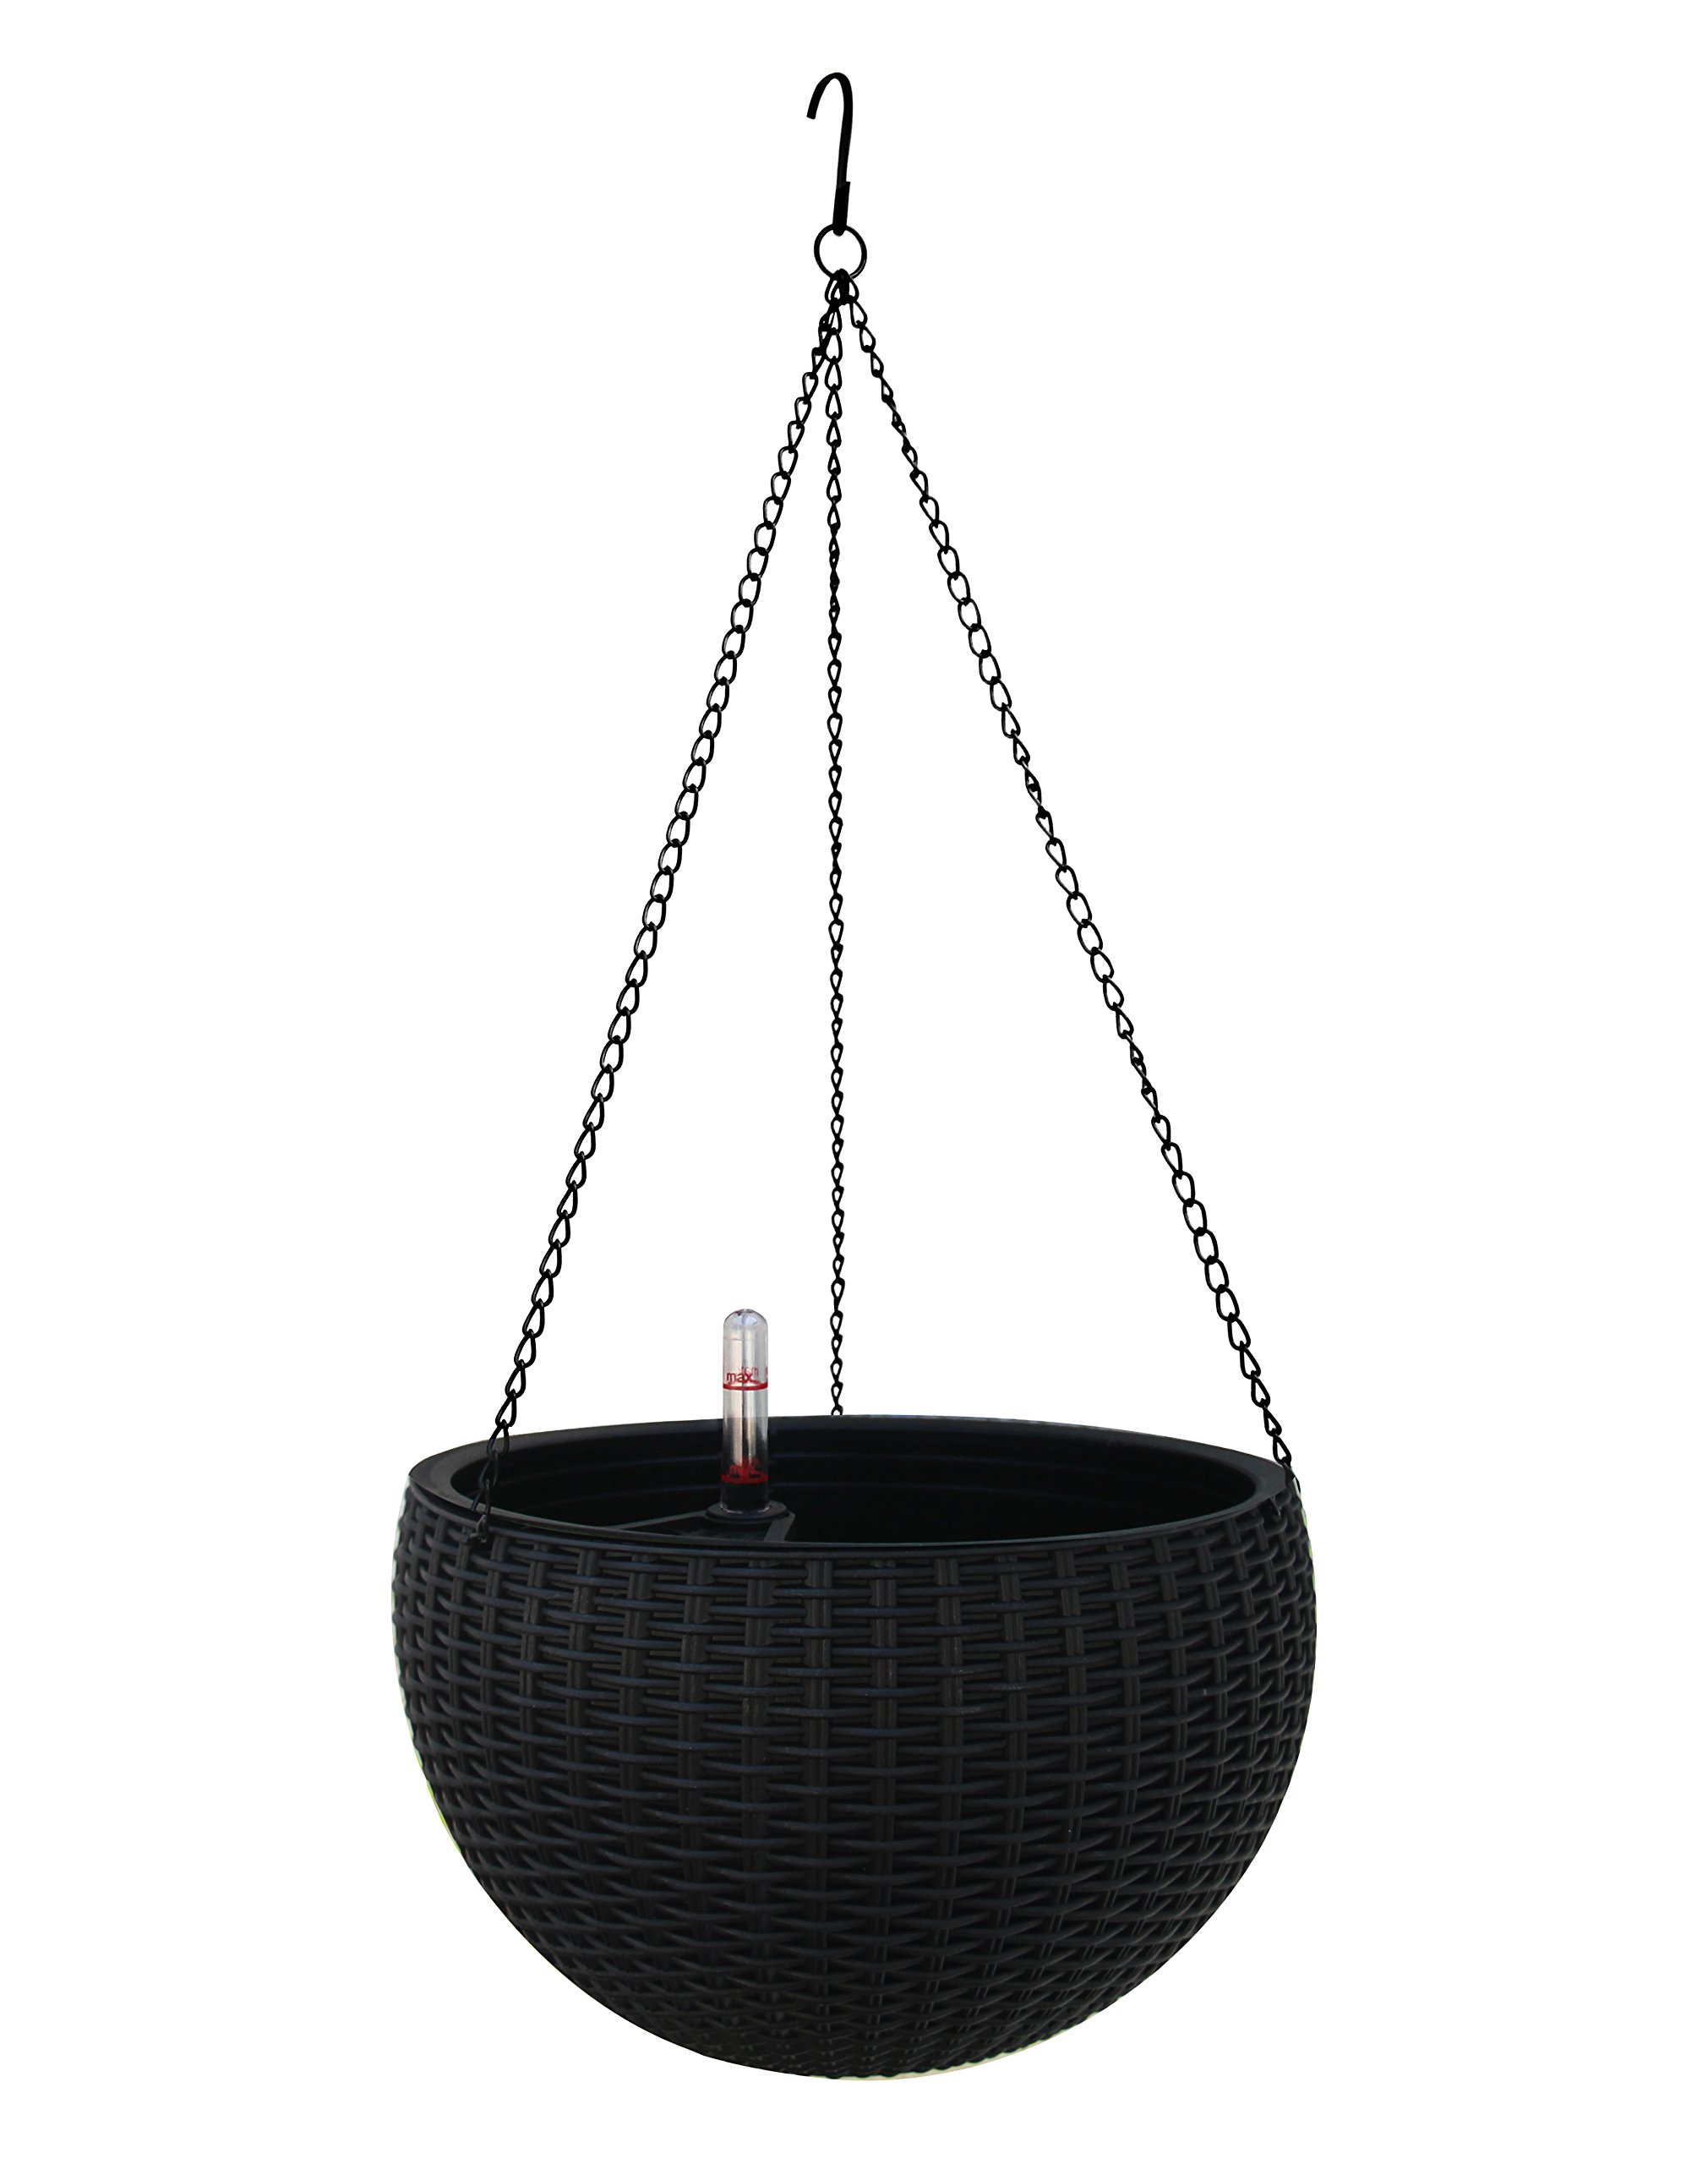 TABOR TOOLS TB709A Hanging Planter for Indoor and Outdoor Use, Elegant Round Plastic Wicker-Design Chain Basket for Flowers and Plants, Self-Watering with Water Level Indicator Gauge (Black)